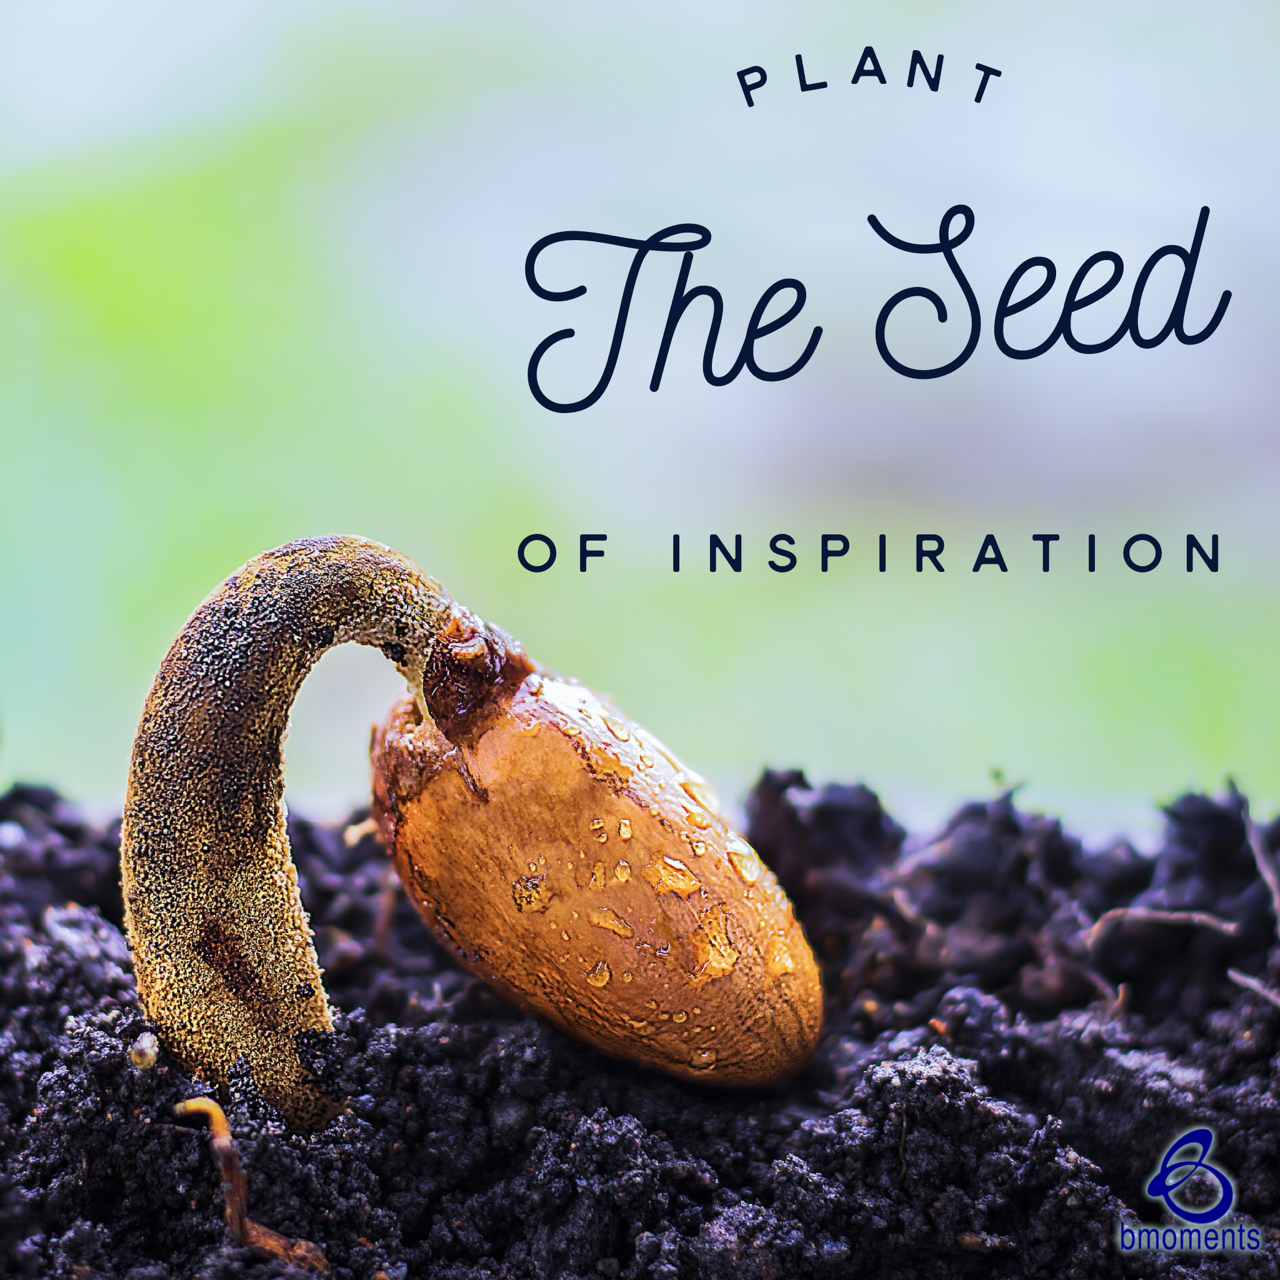 Use Your Words as Loving, Inspiring Seeds